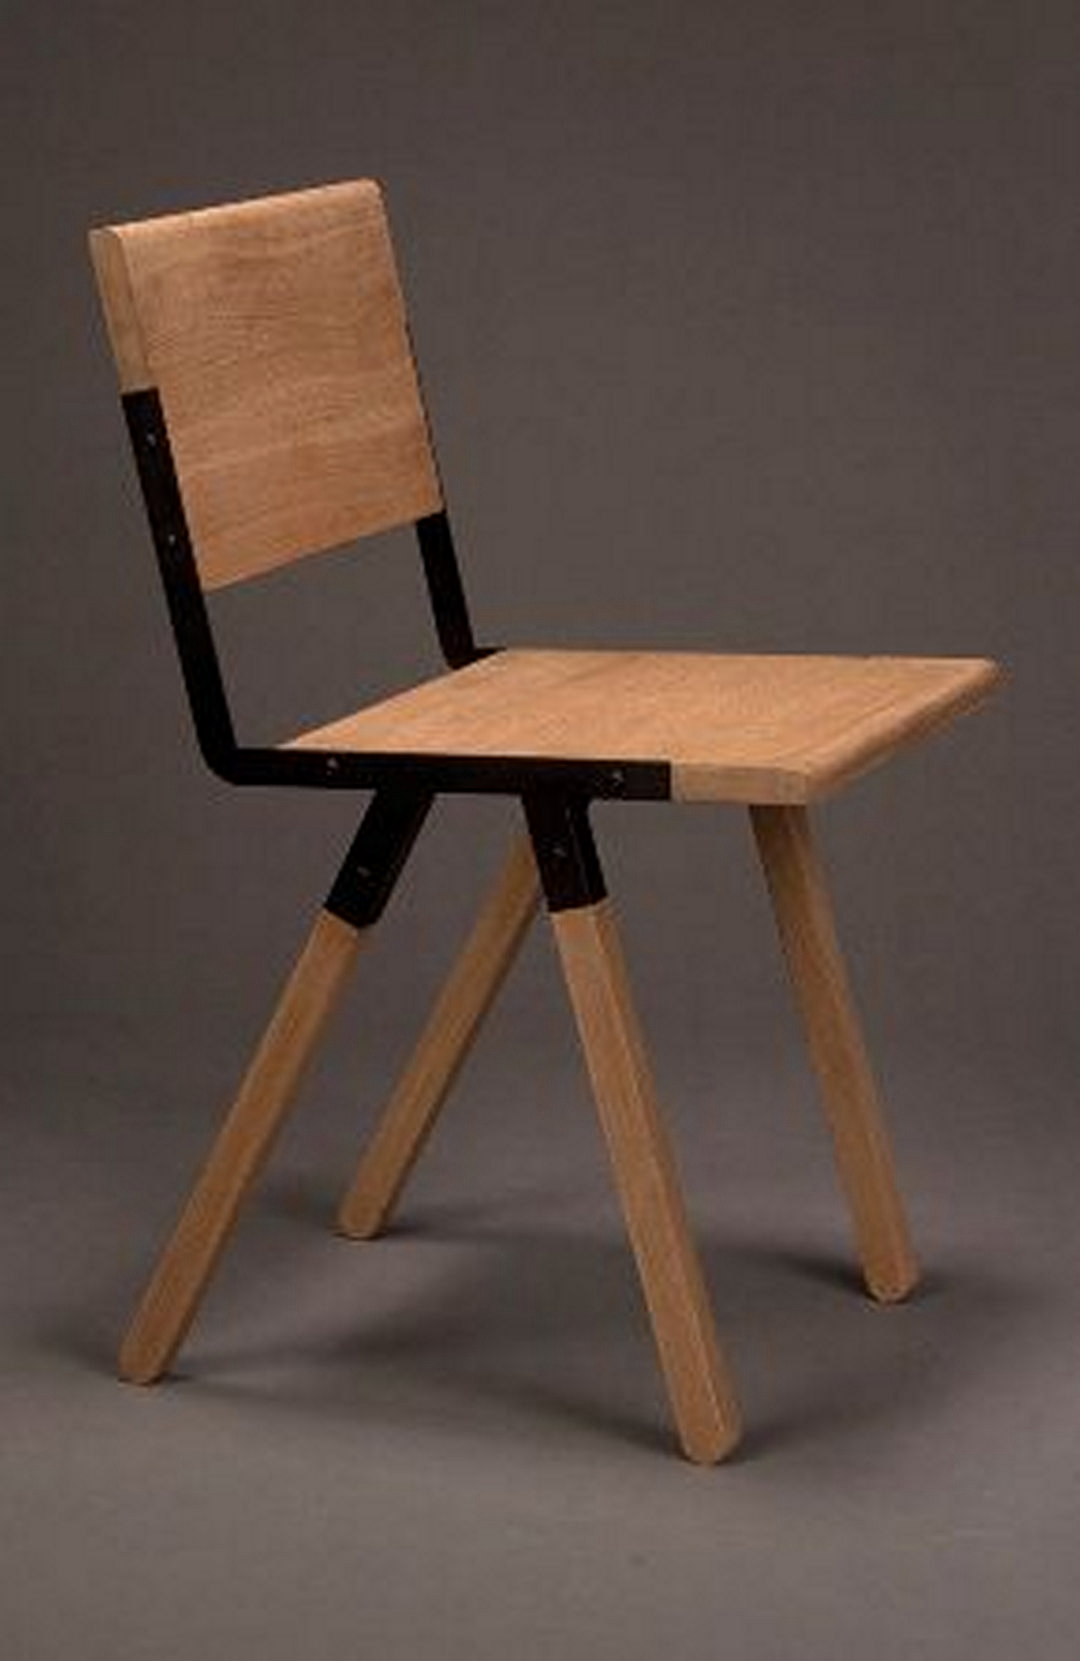 Modern Chair Design Home Decorations Design list of things